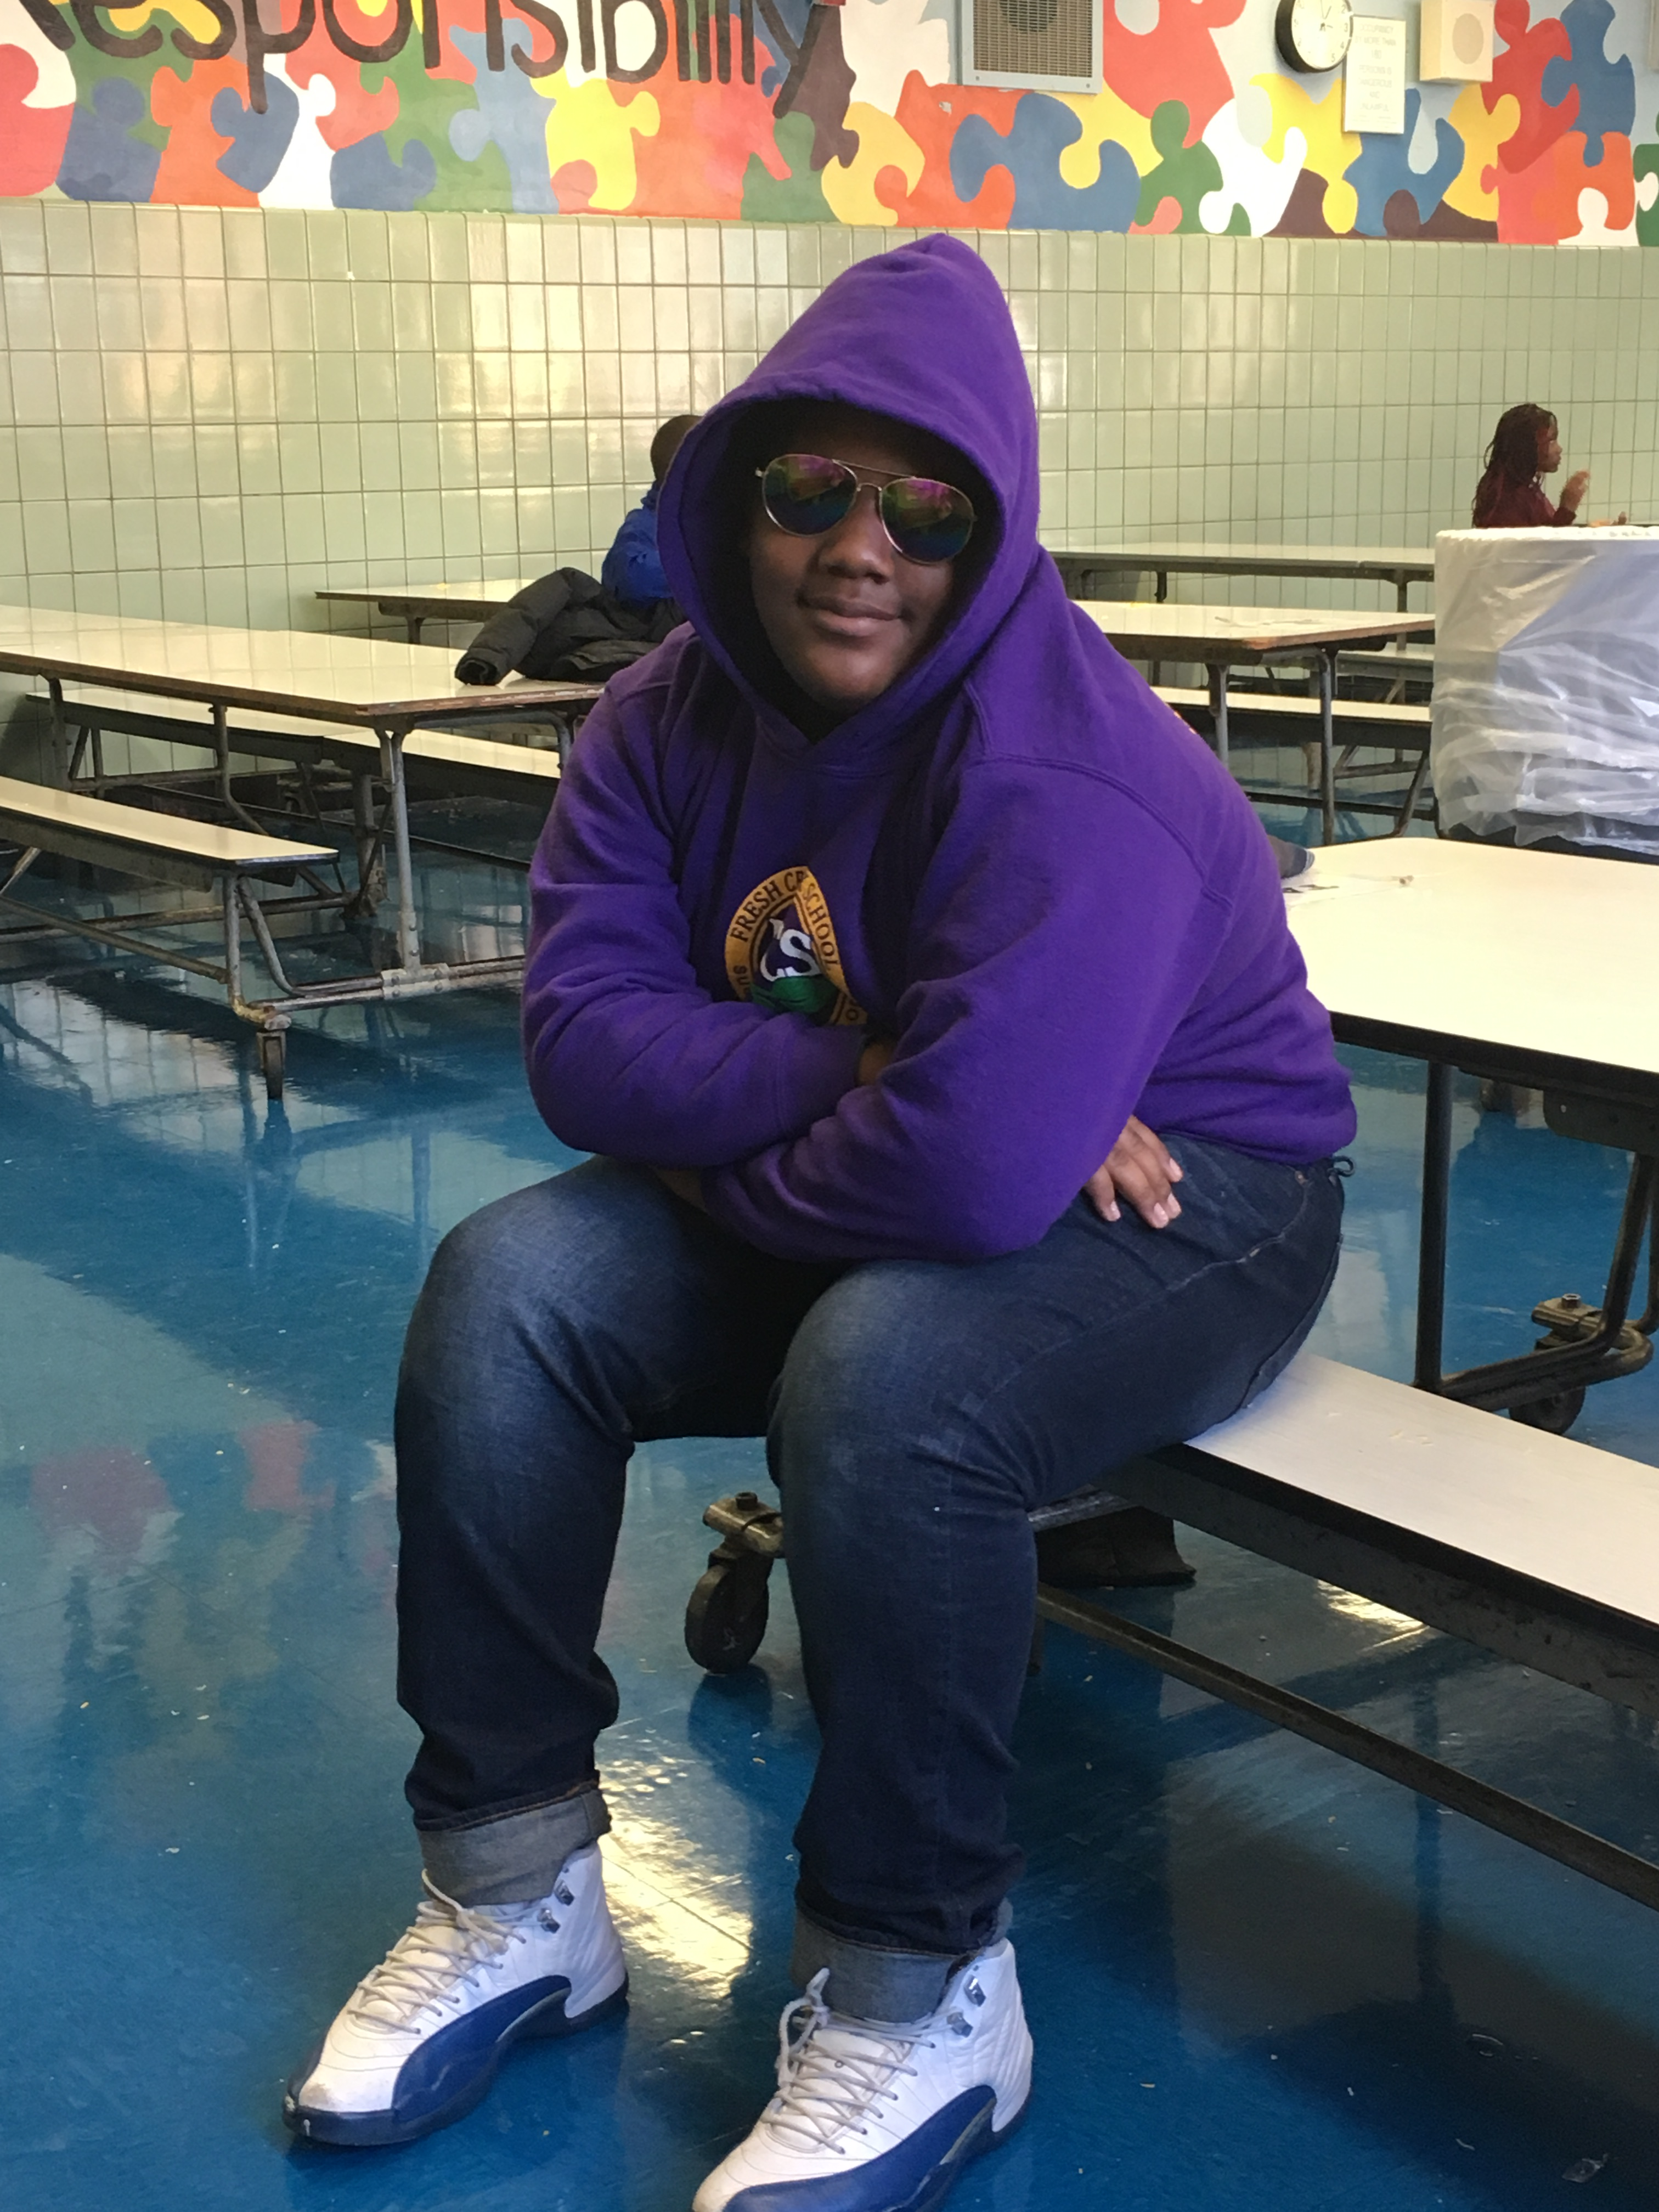 Student sitting at cafeteria table with sunglasses on and smiling at the camera